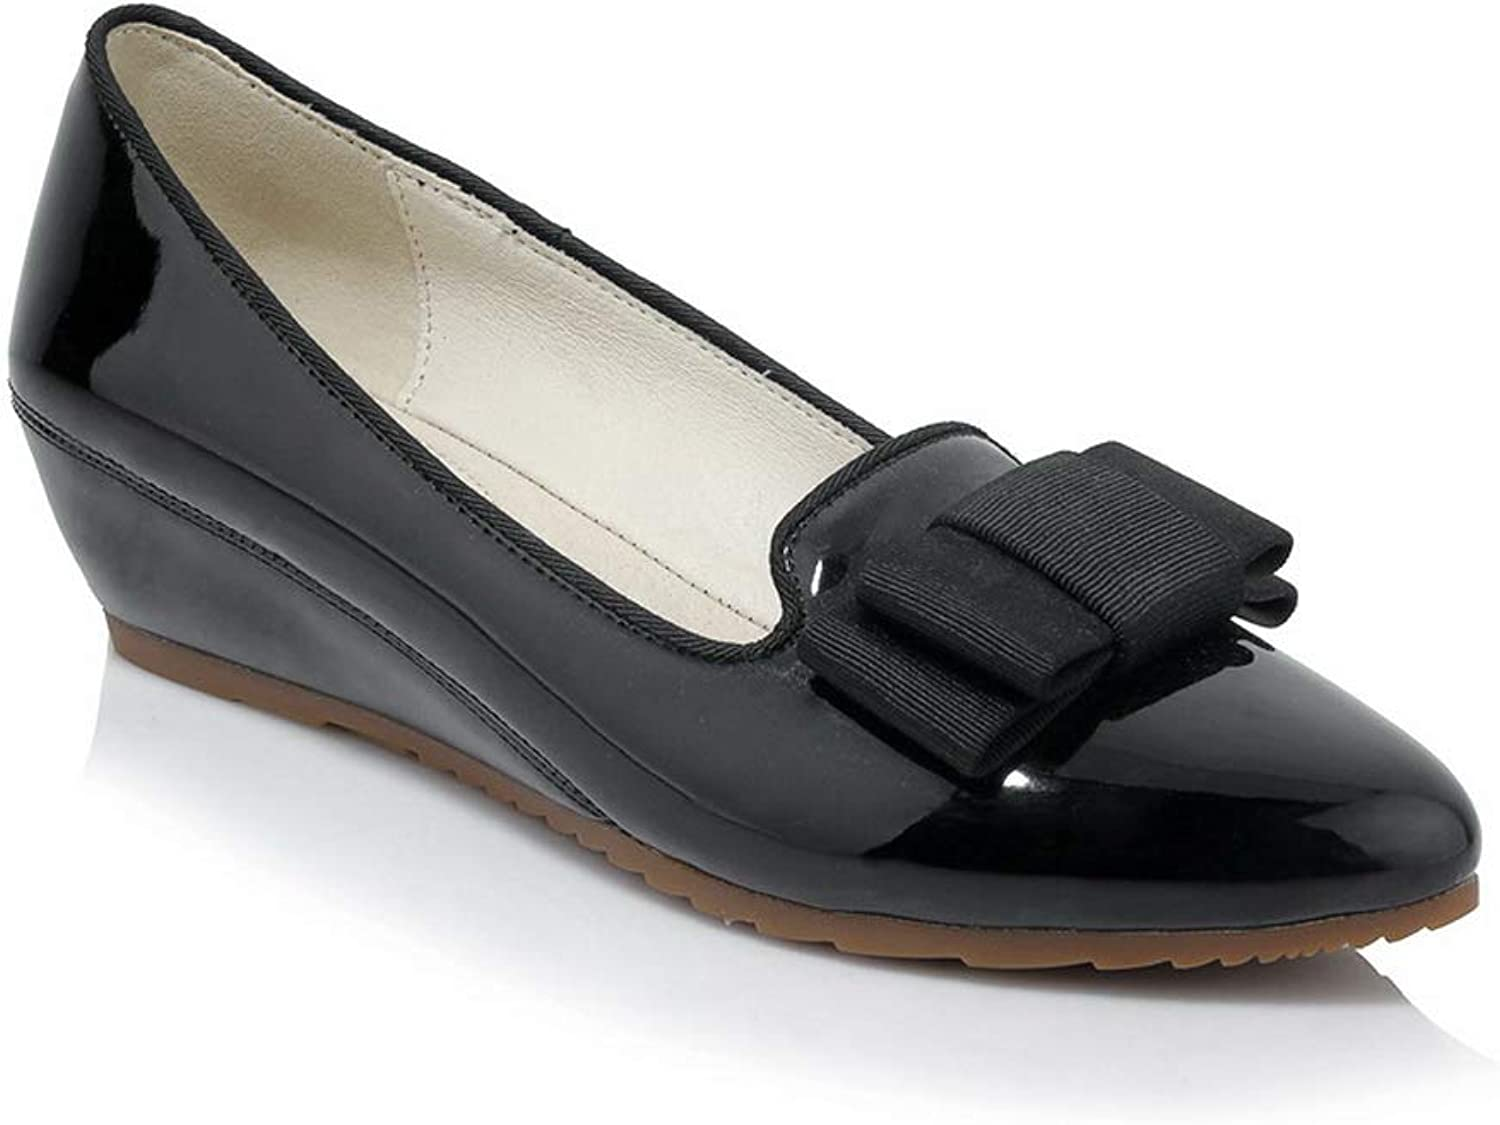 AN Womens Wedges Pointed-Toe Patent-Leather Pumps shoes DGU00735